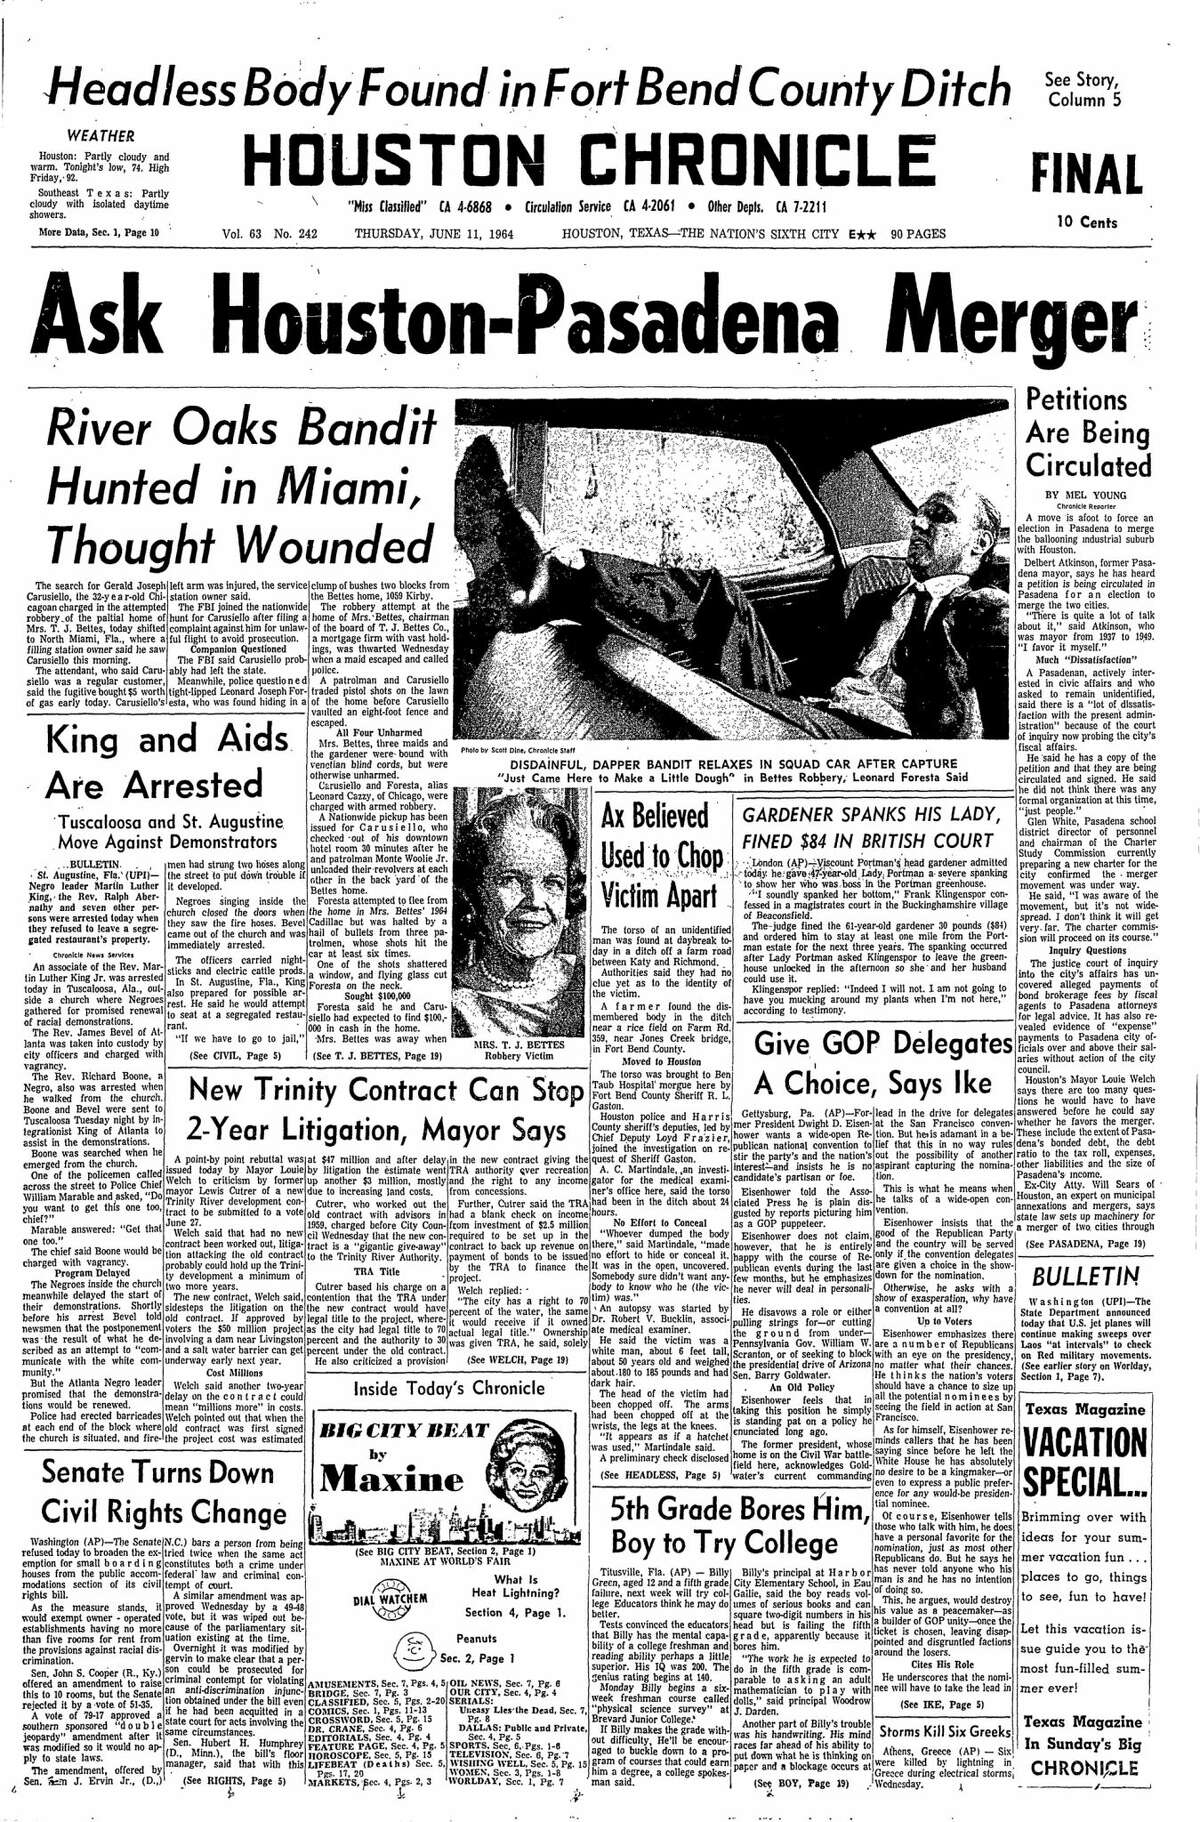 Houston Chronicle front page for June 11, 1964.